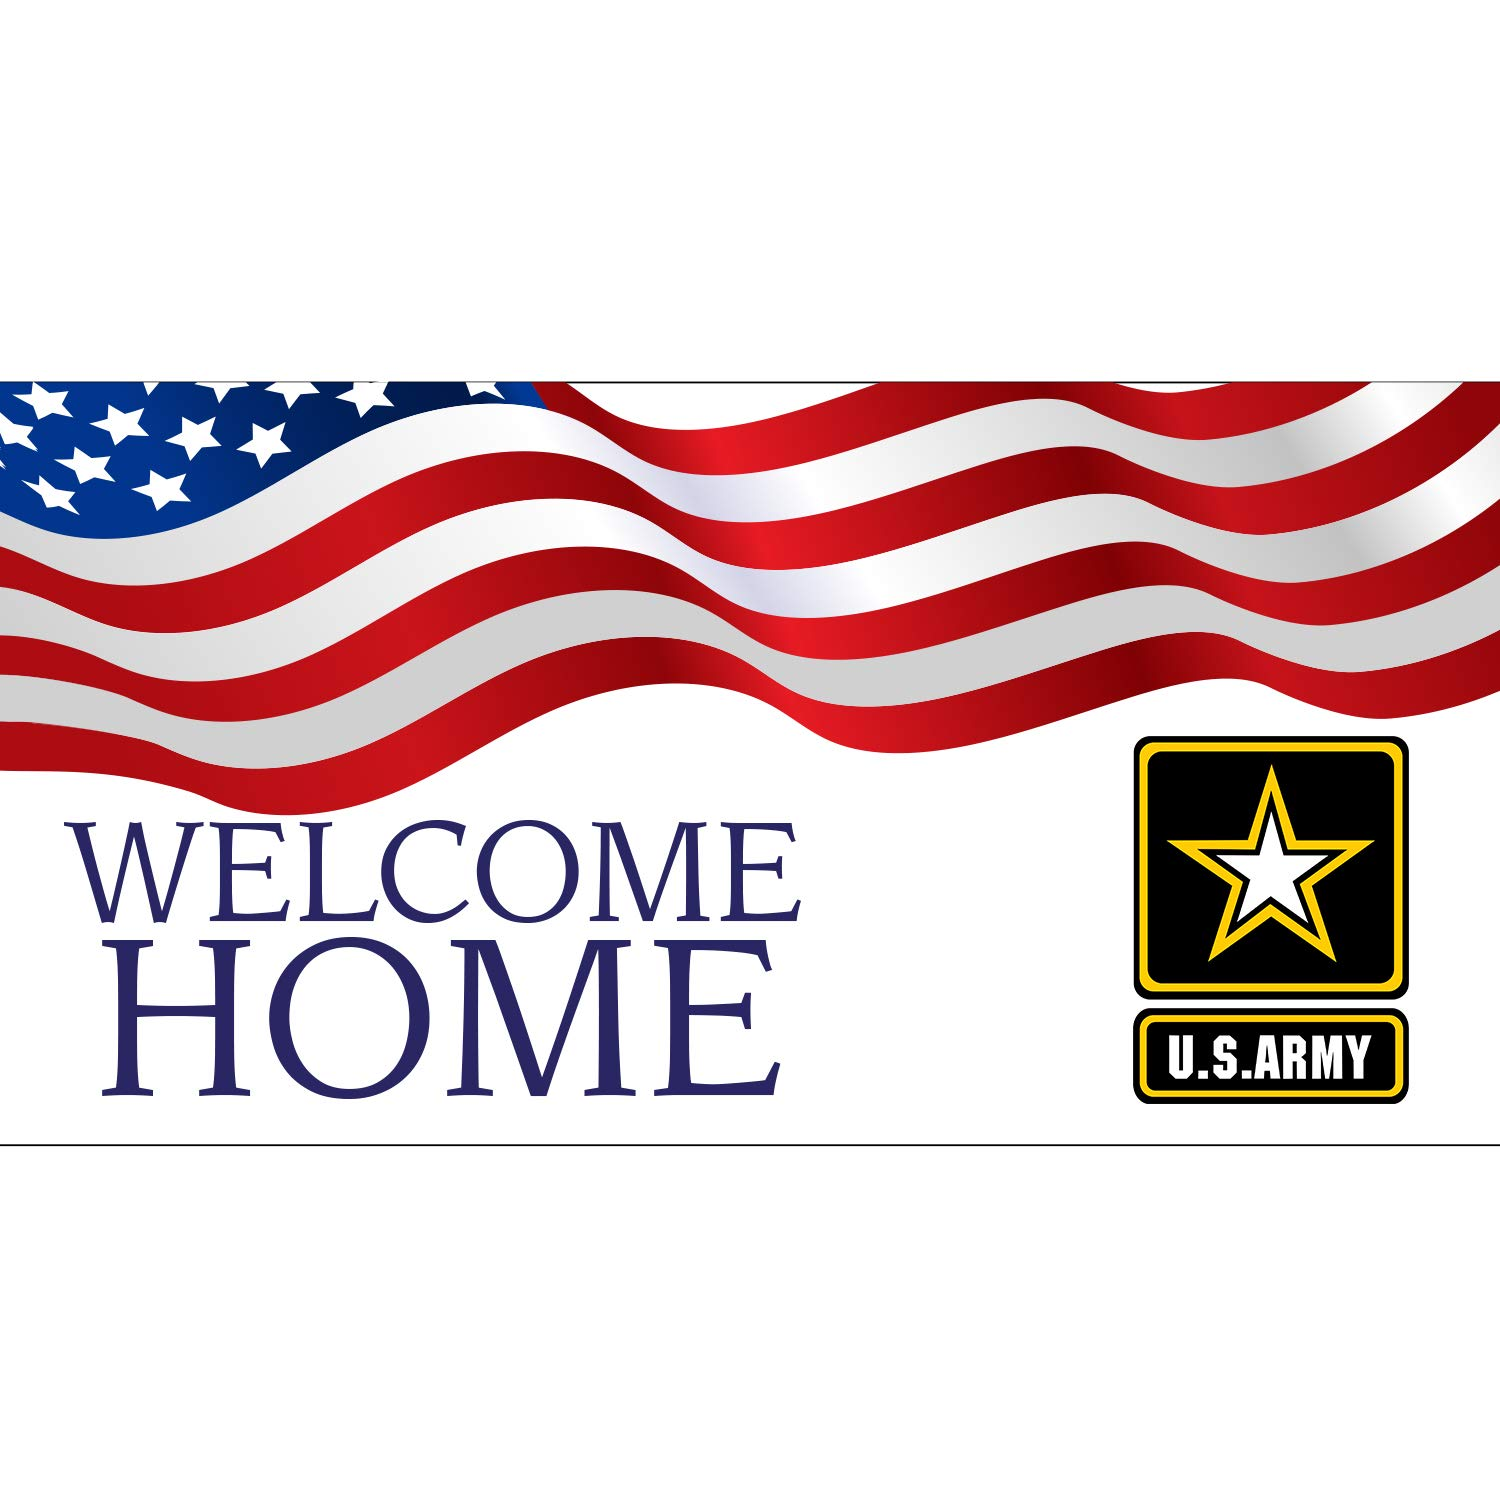 Welcome Home US Army Banner 11 Oz High Quality Vinyl PVC Flex Banners with Hemmed Edges & Metal Grommets Free (8' X 3')